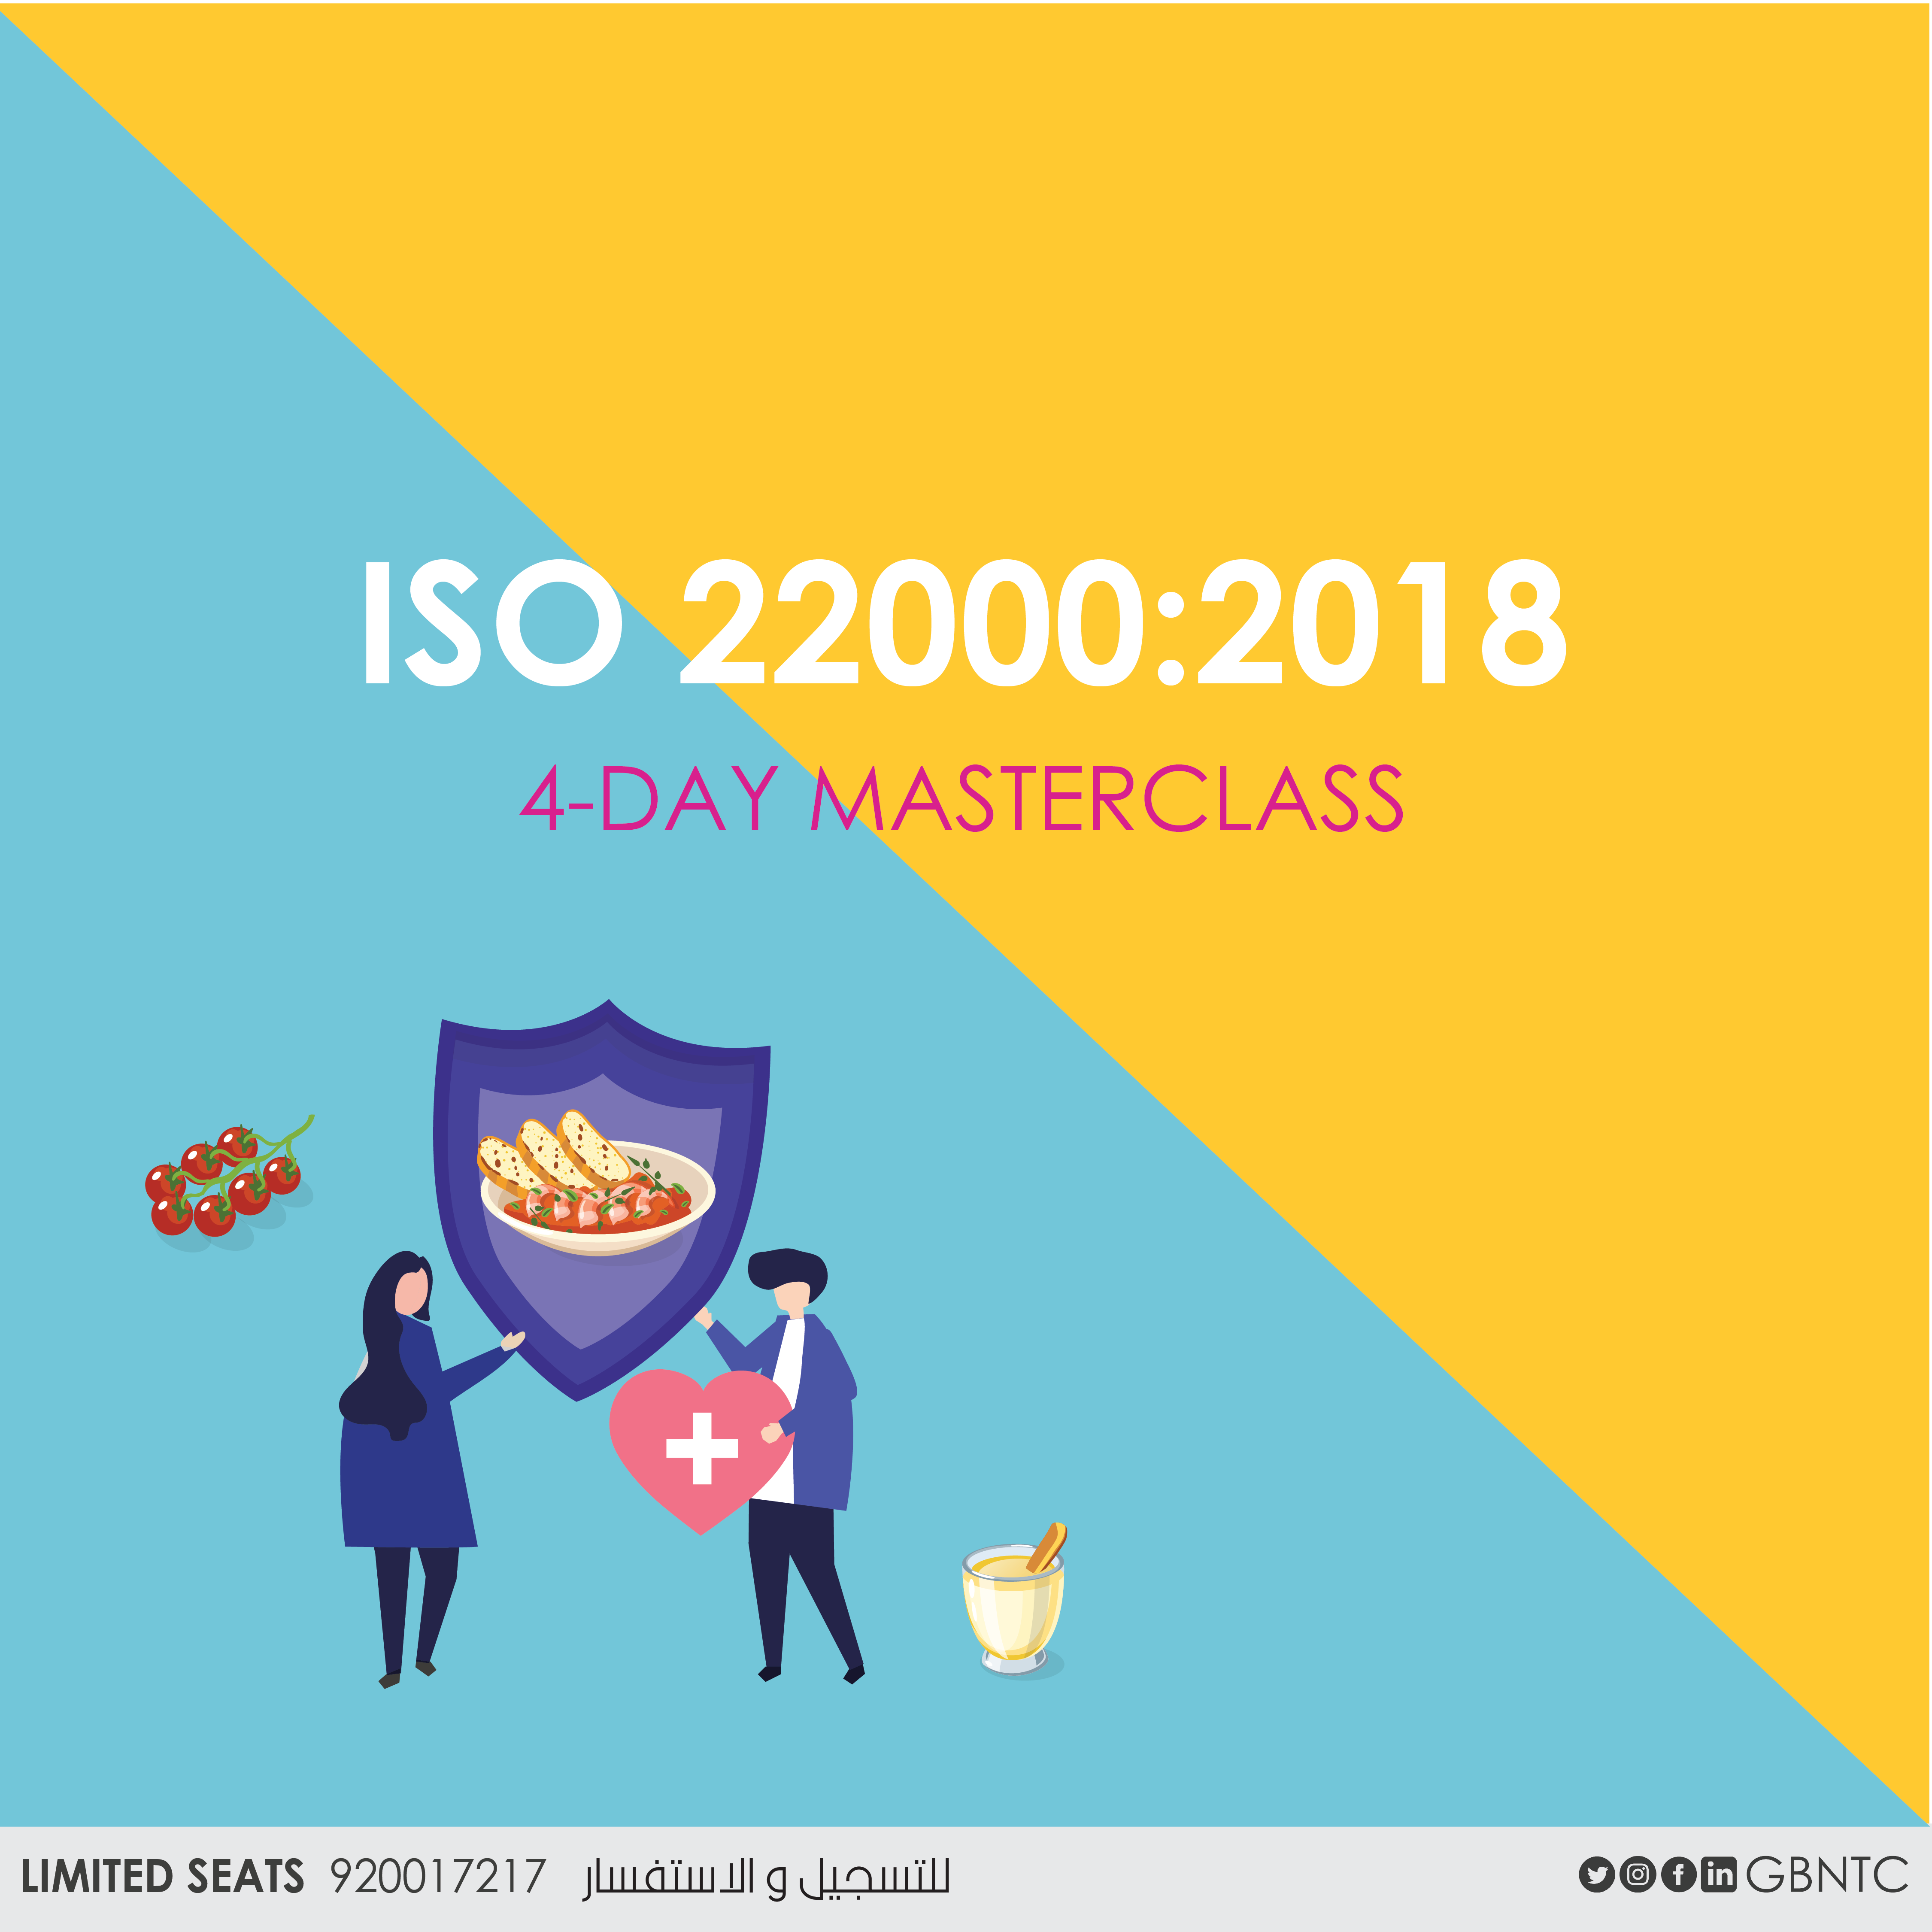 iso_instapost-02